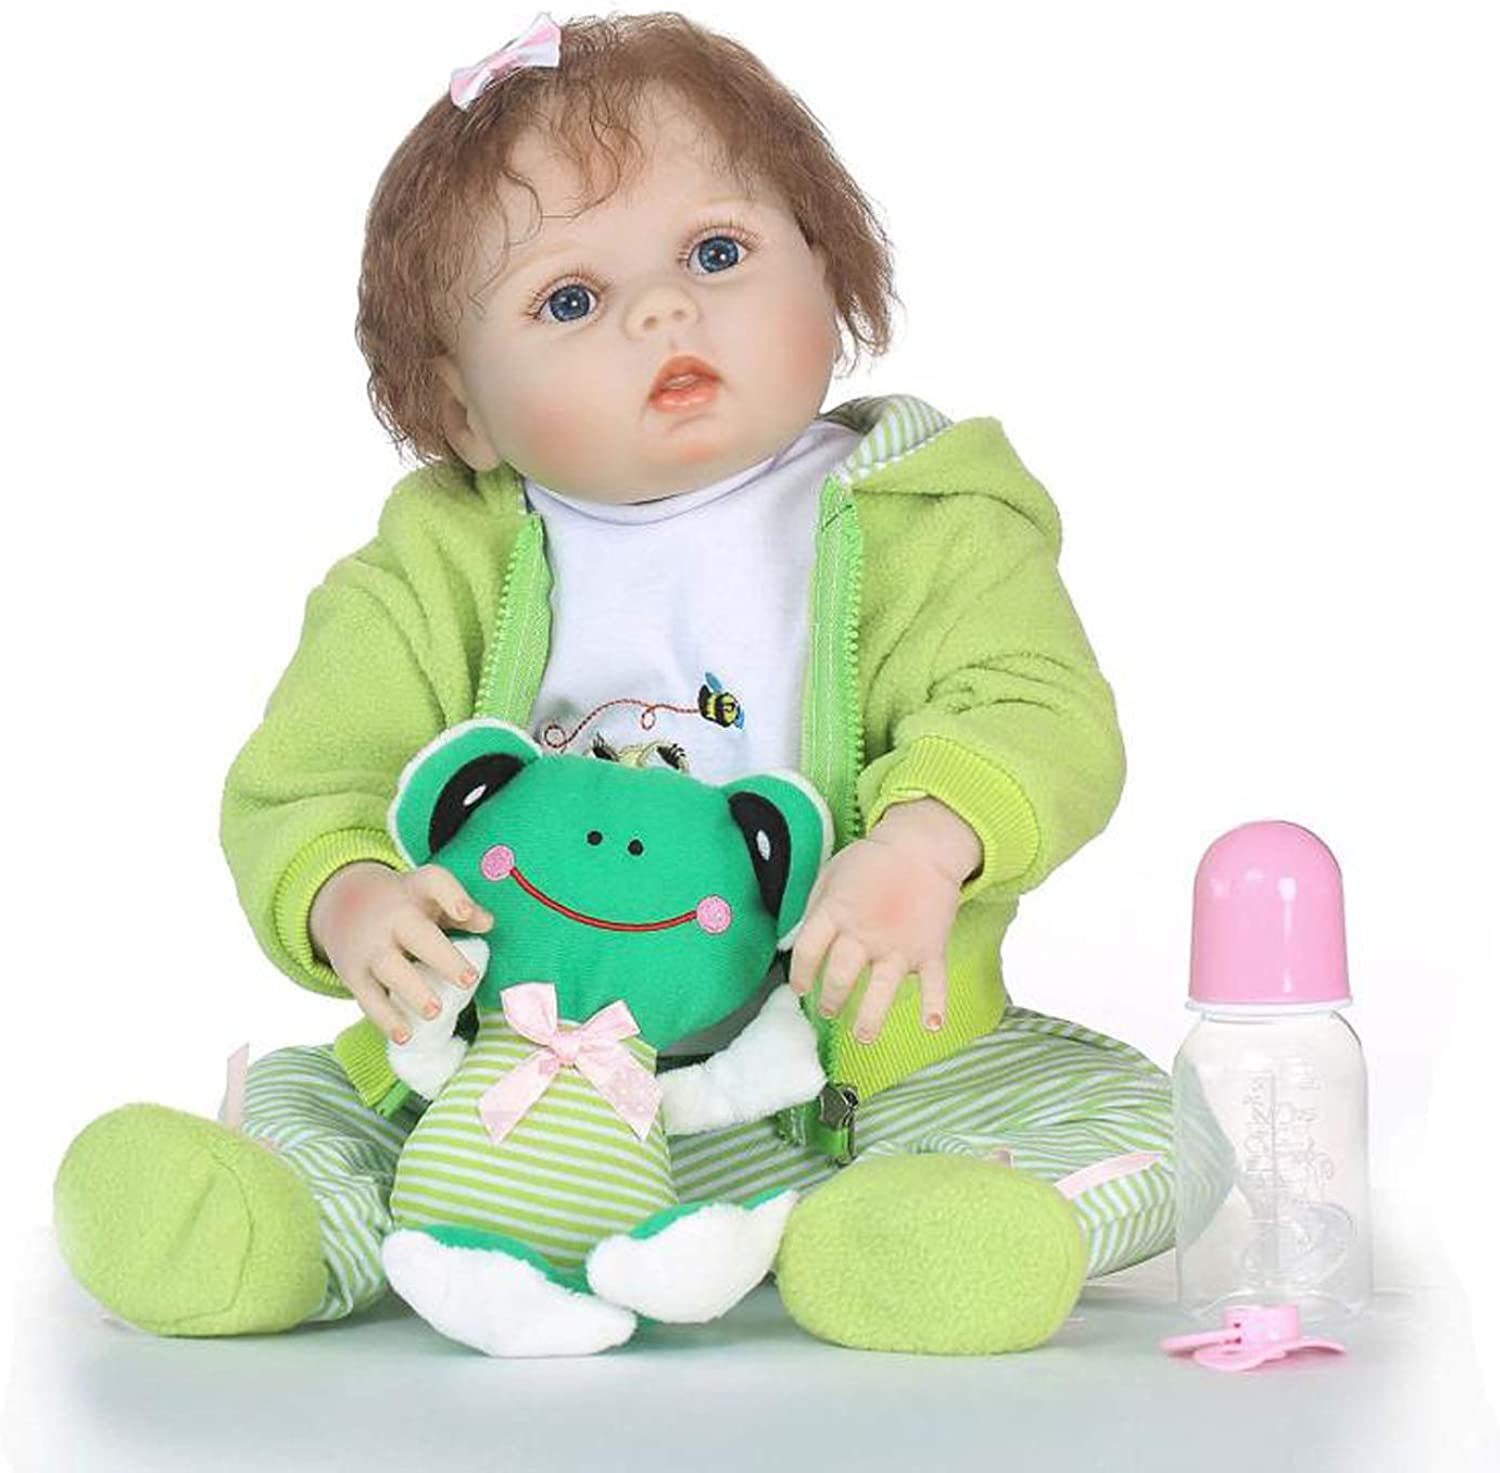 TERABITHIA 22 inch Real Life Reborn Baby Doll,Happy Frog,Girl Doll Crafted in SiliconeLike Vinyl Full Body